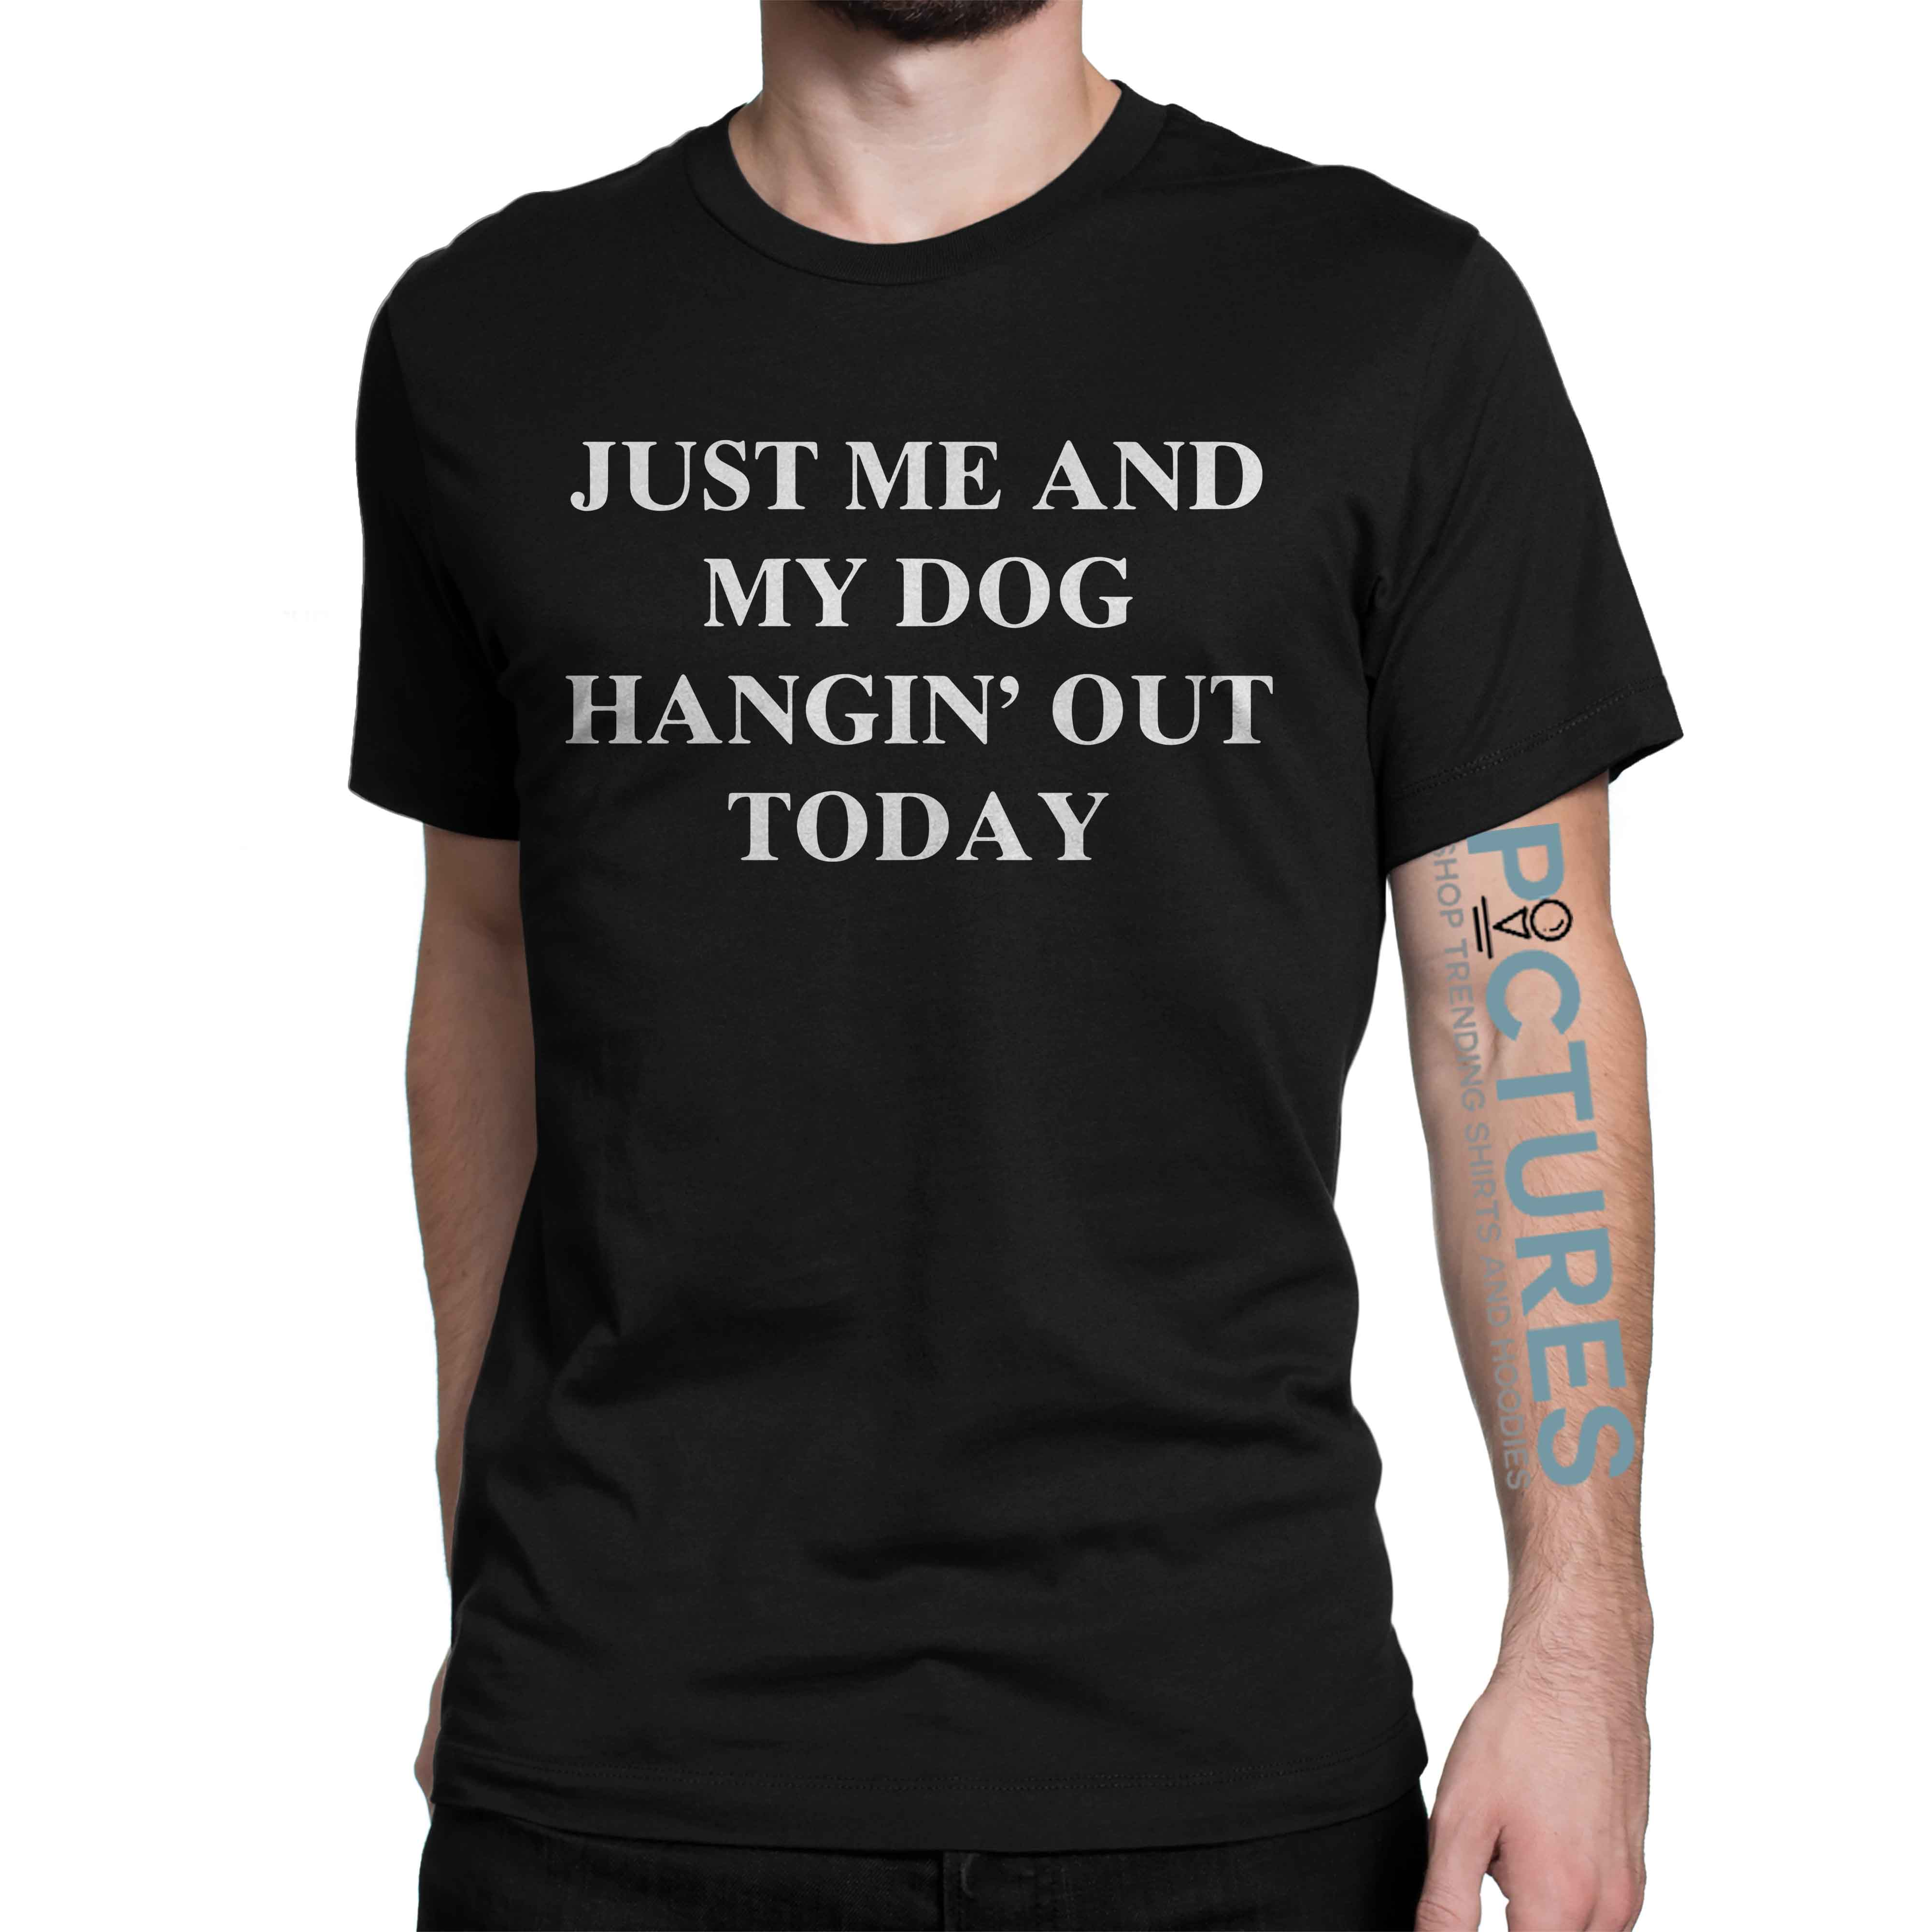 Just Me And My Dog Hangin' Out Today shirt